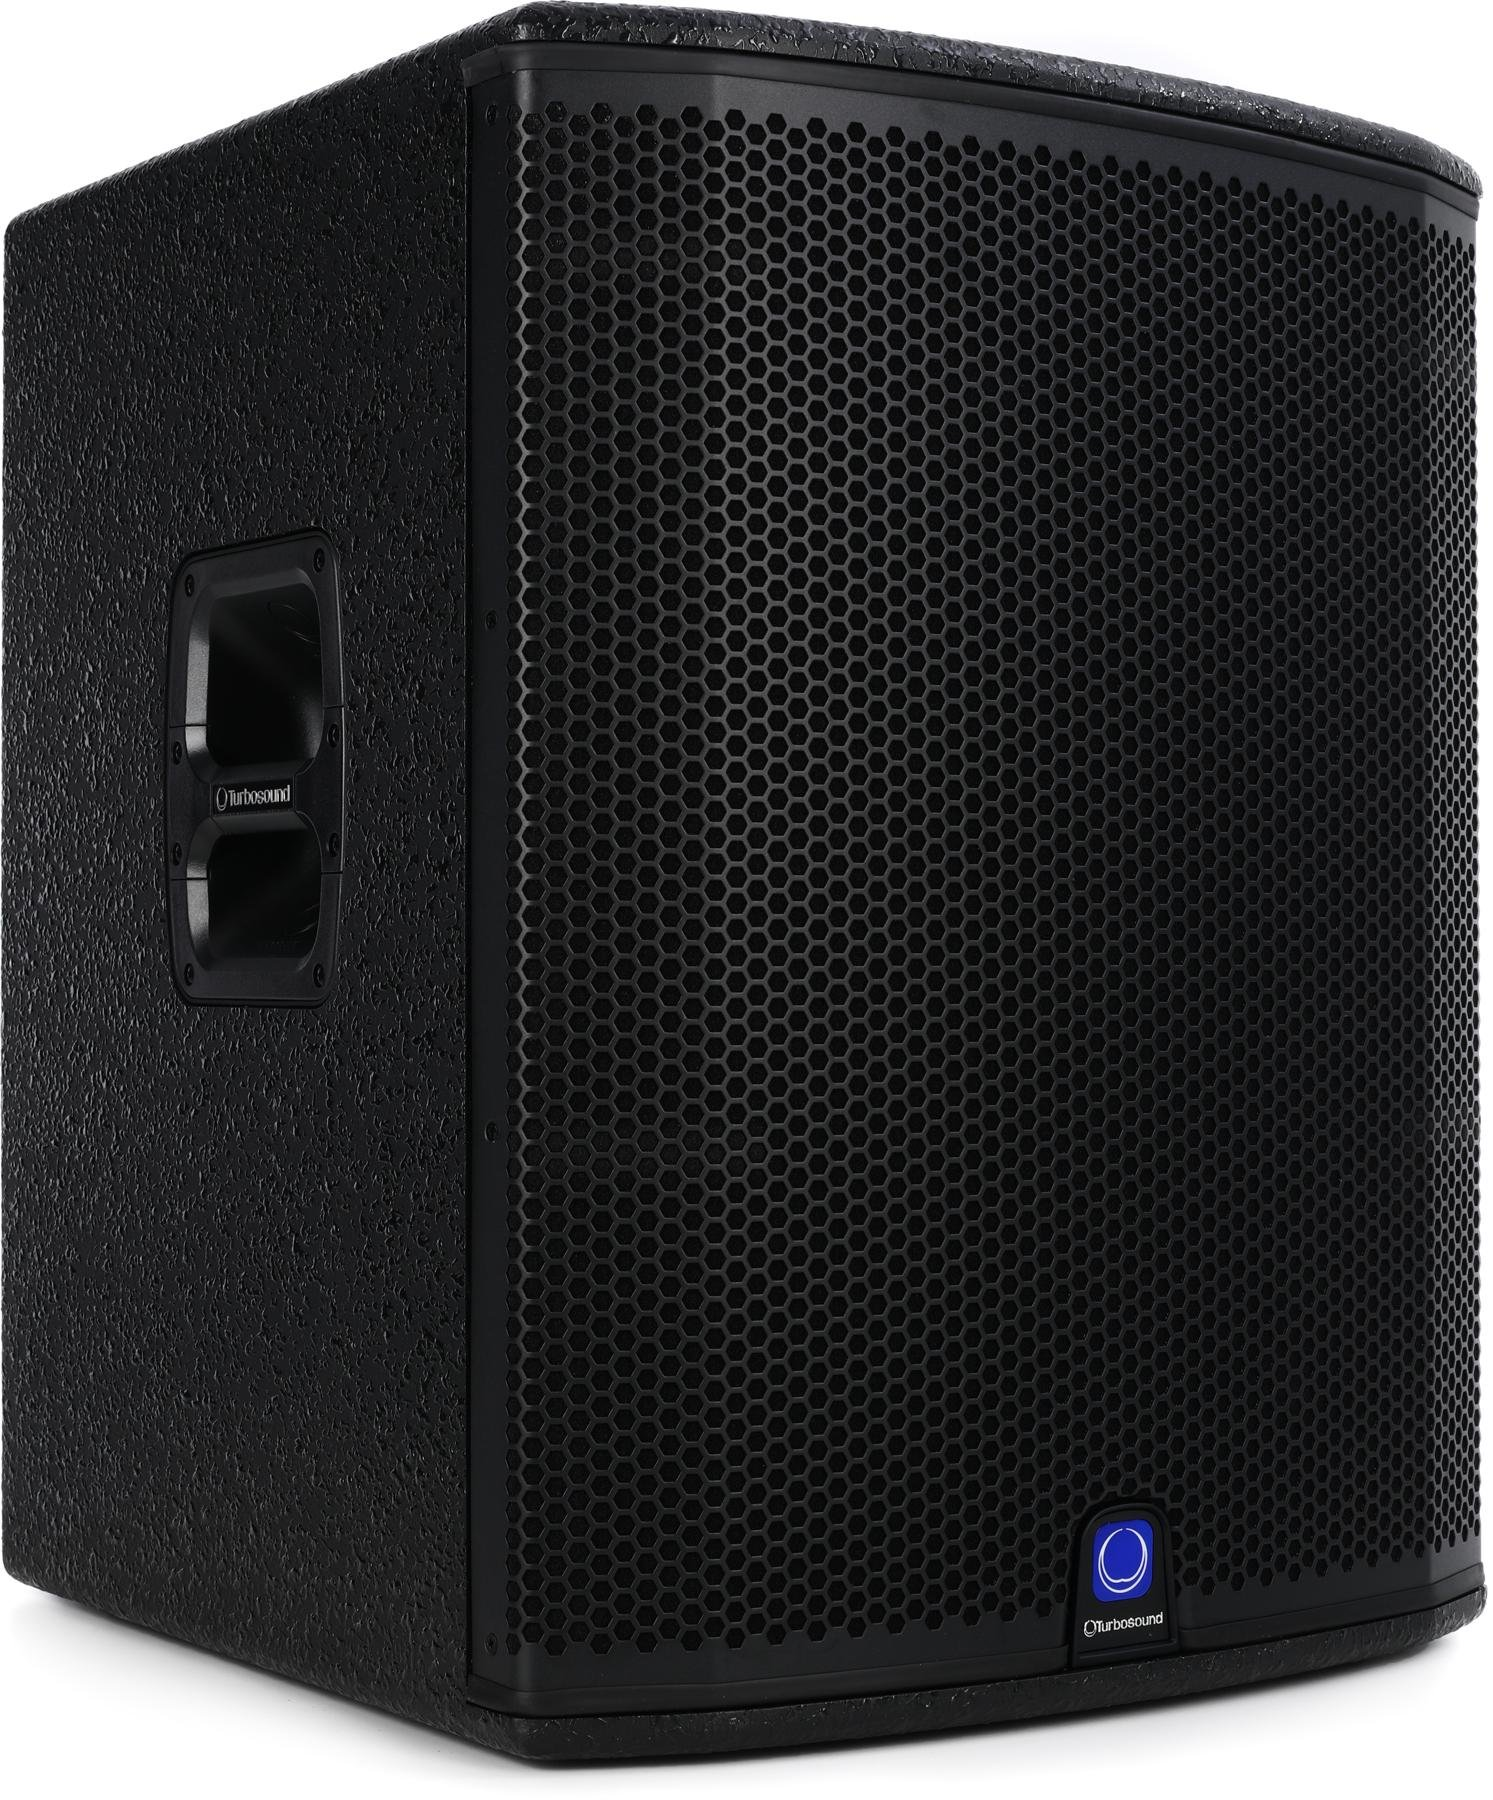 Turbosound Iq15 2500w 15 Powered Speaker Sweetwater Coil Device And Using On Wiring Speakers Dual Voice Iq18b